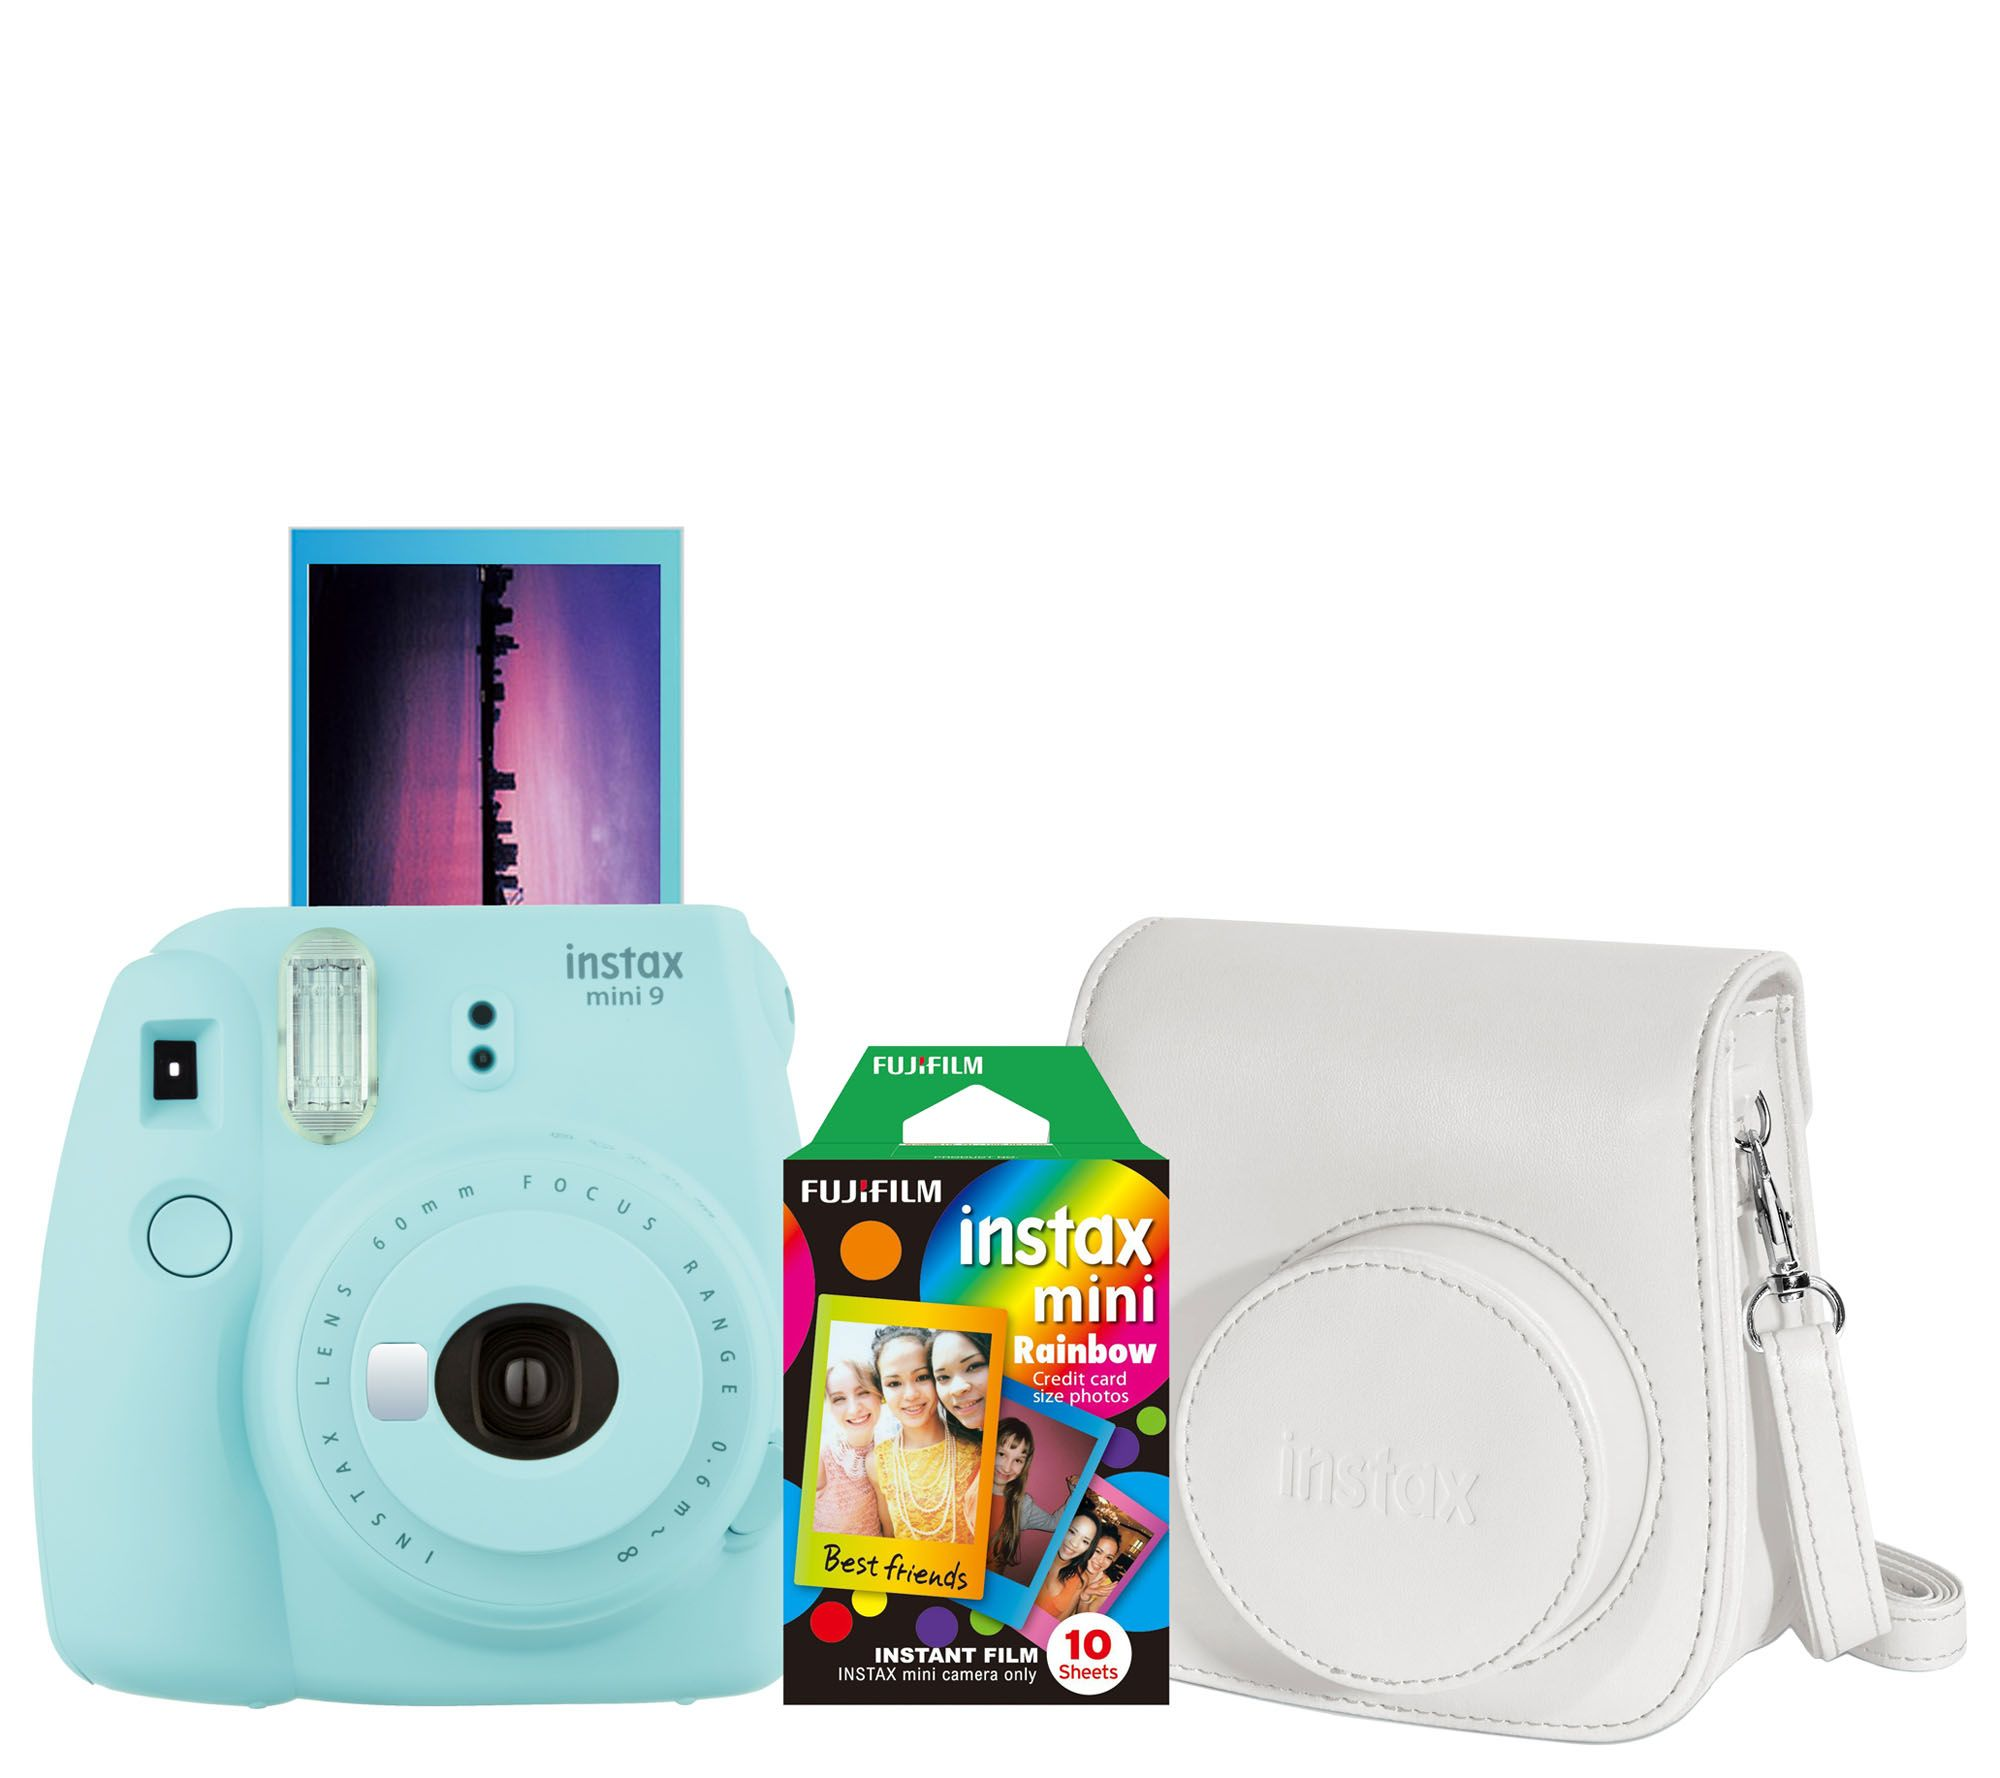 Fujifilm Instax Mini 9 Instant Film Camera with Film and Case - Page 1 — QVC.com